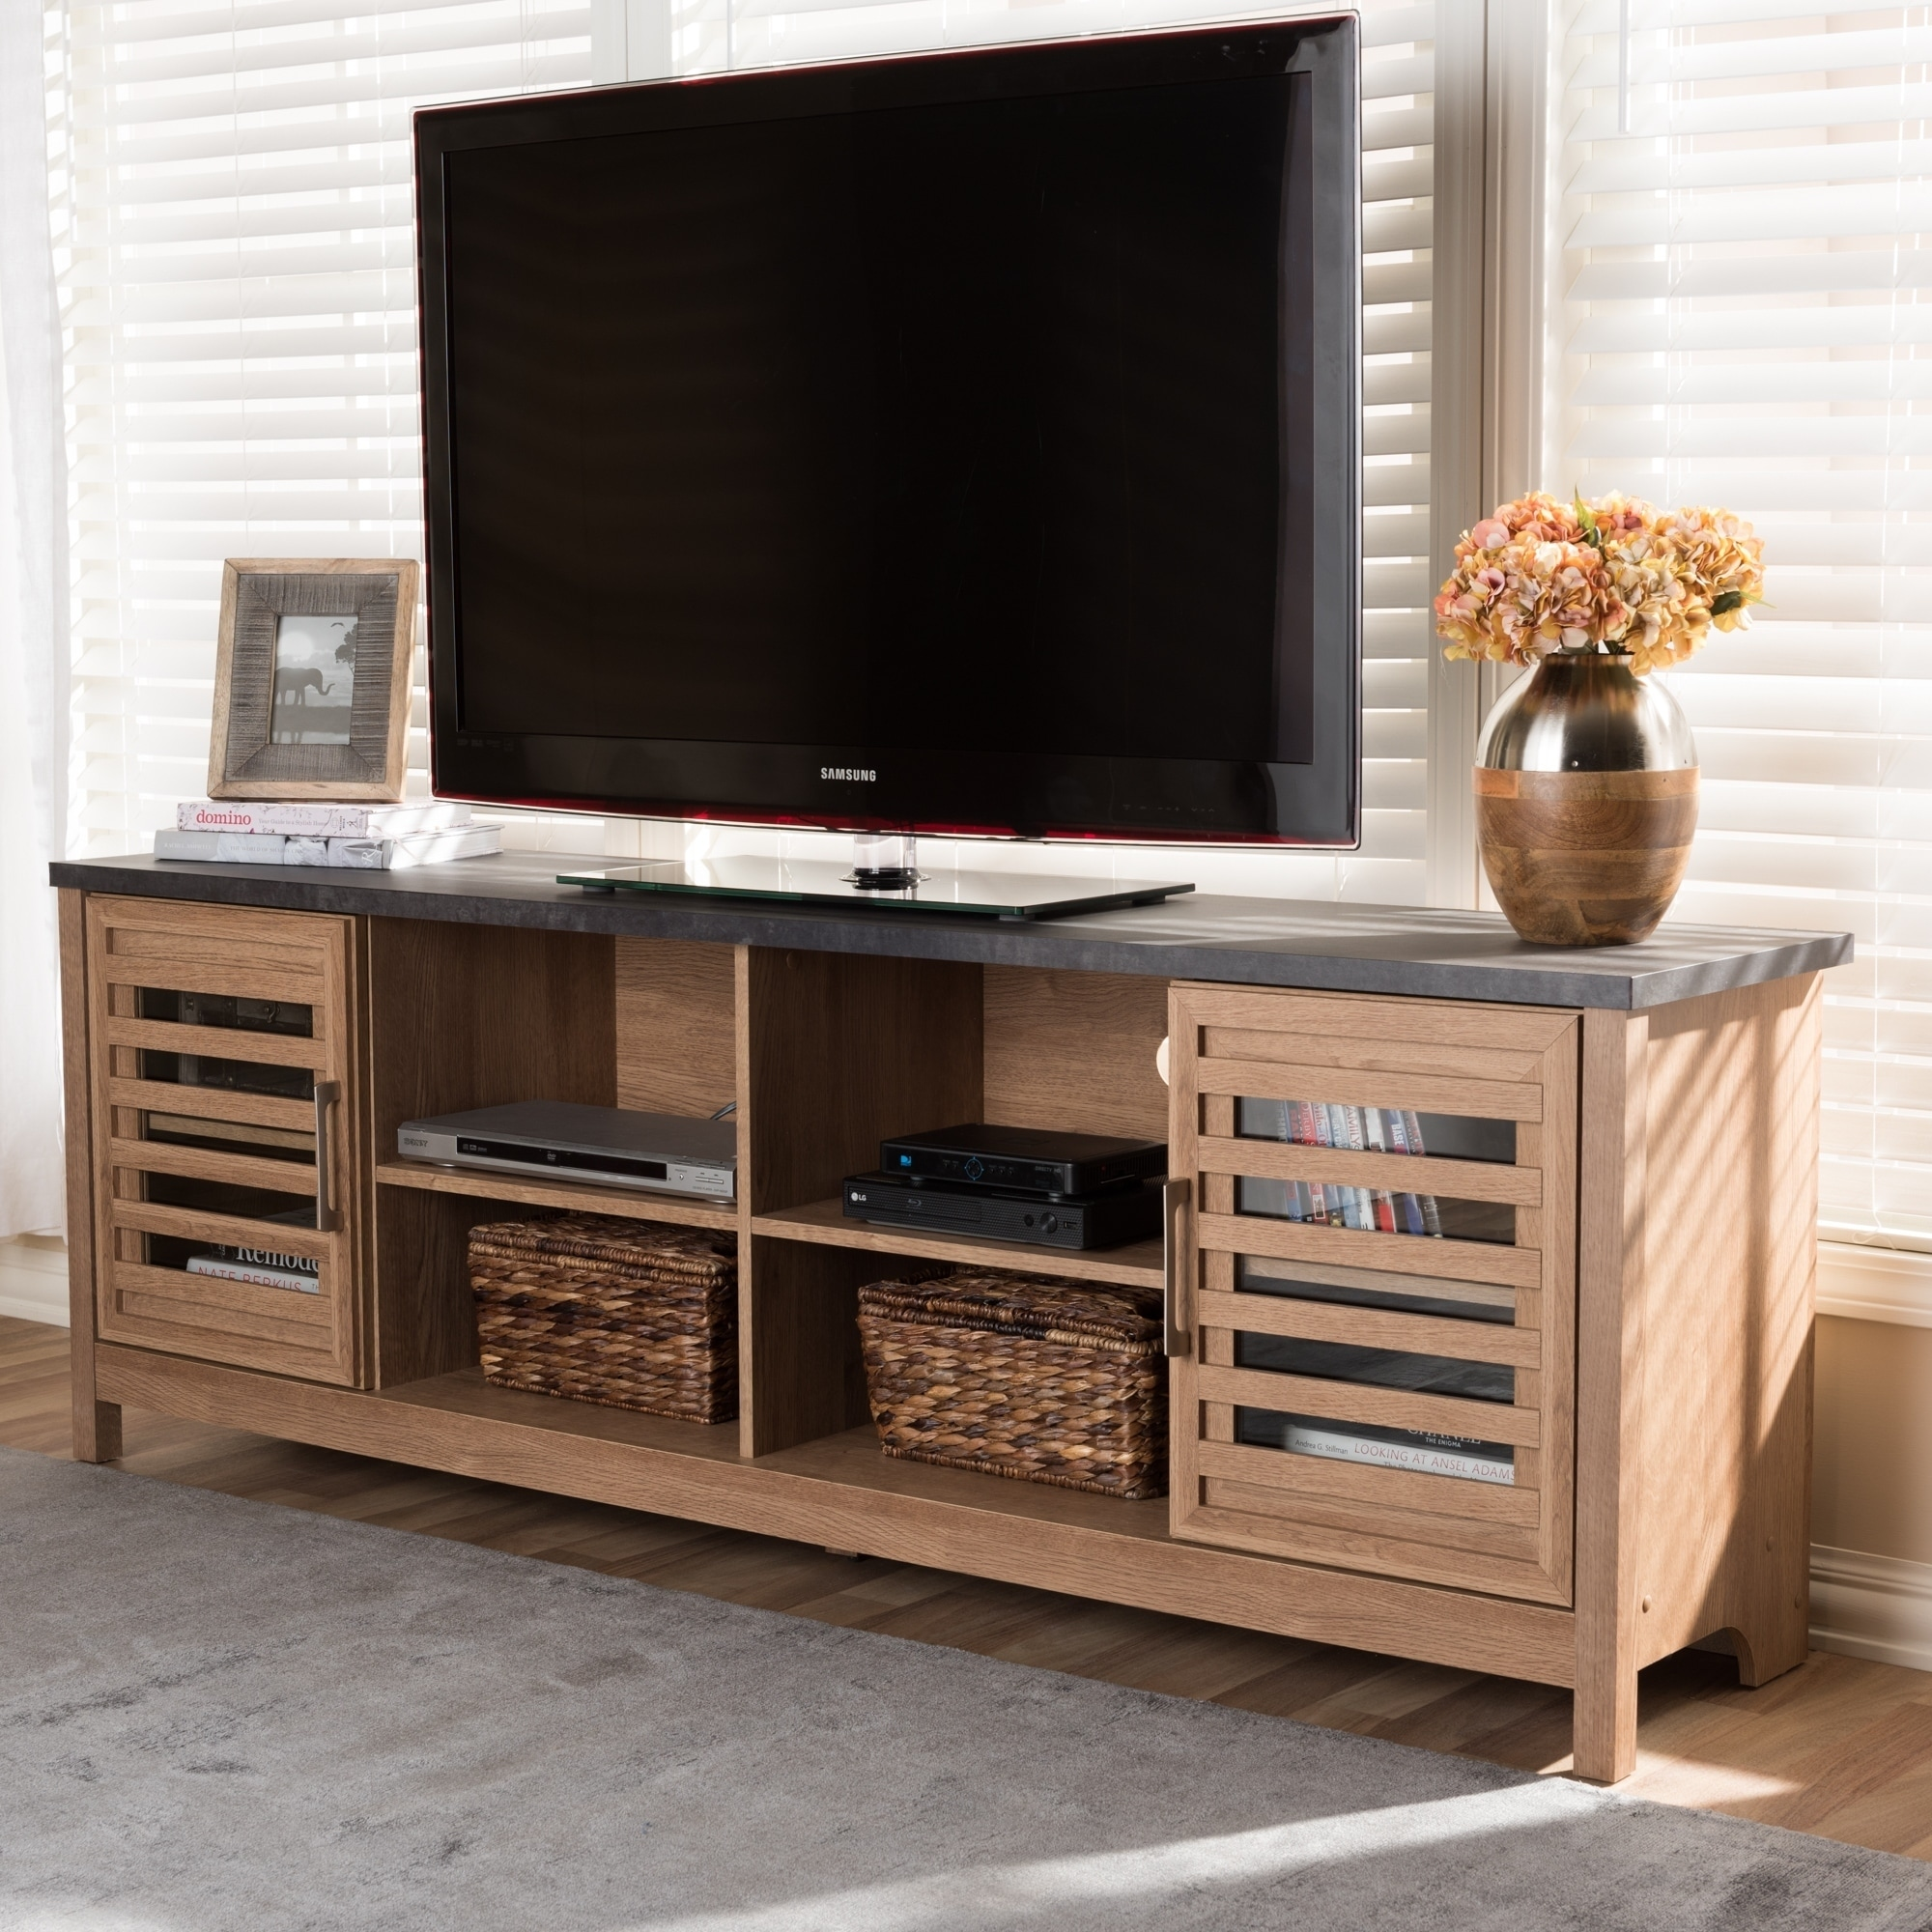 contemporary light brown and grey finished tv stand by baxton studio - Light Colored Tv Stands